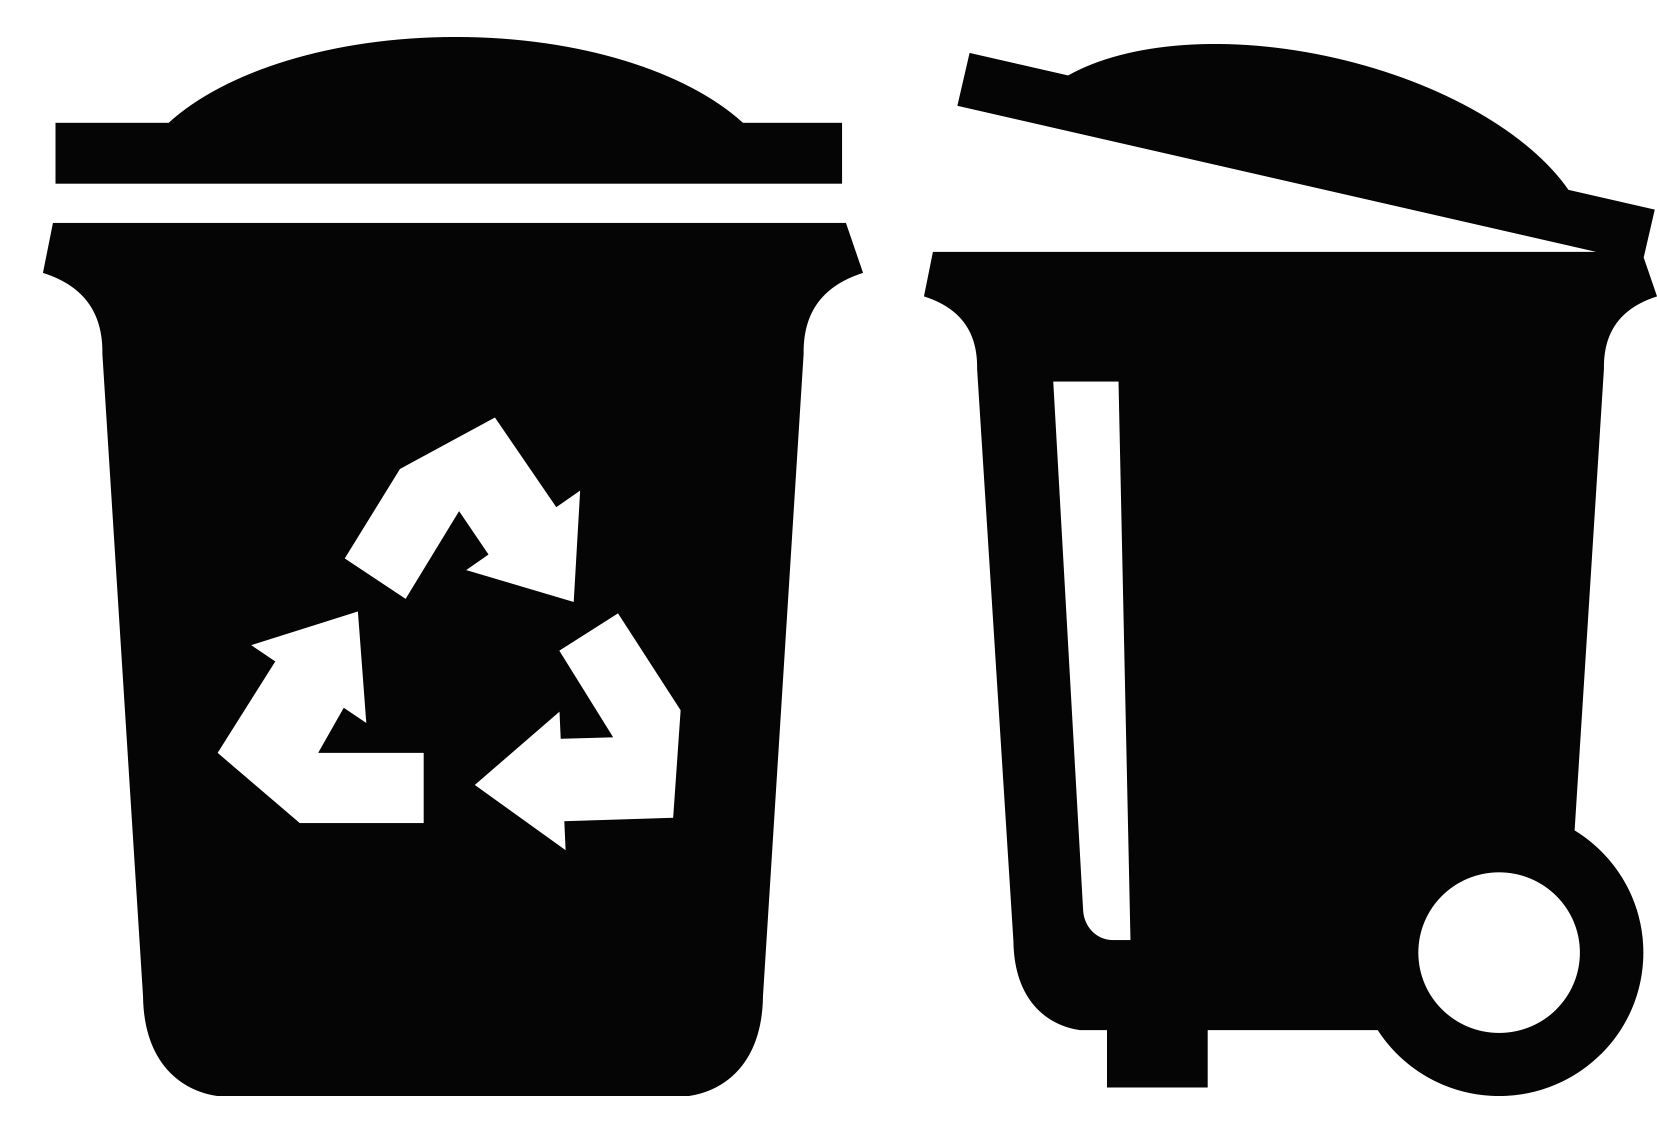 Trash and recyling bin clipart banner free Tabsmore banner free